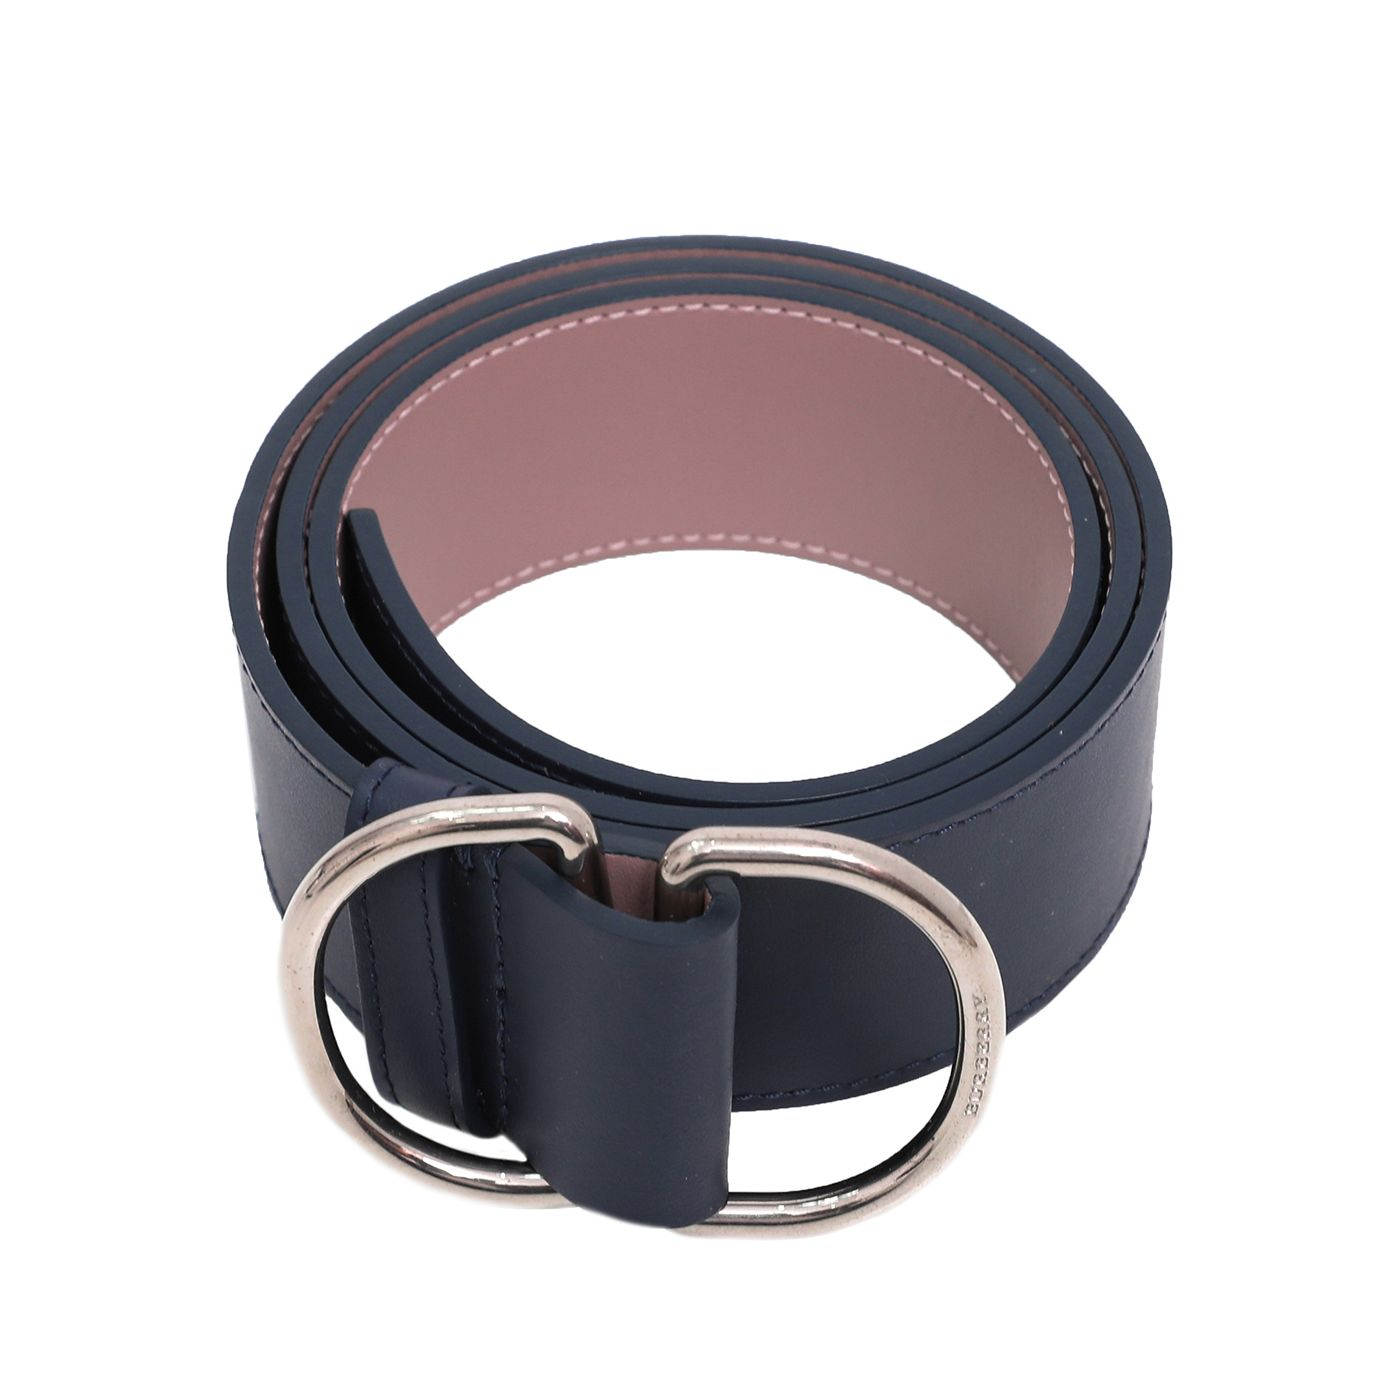 Burberry Bicolor Double D Ring Buckle Belt Small